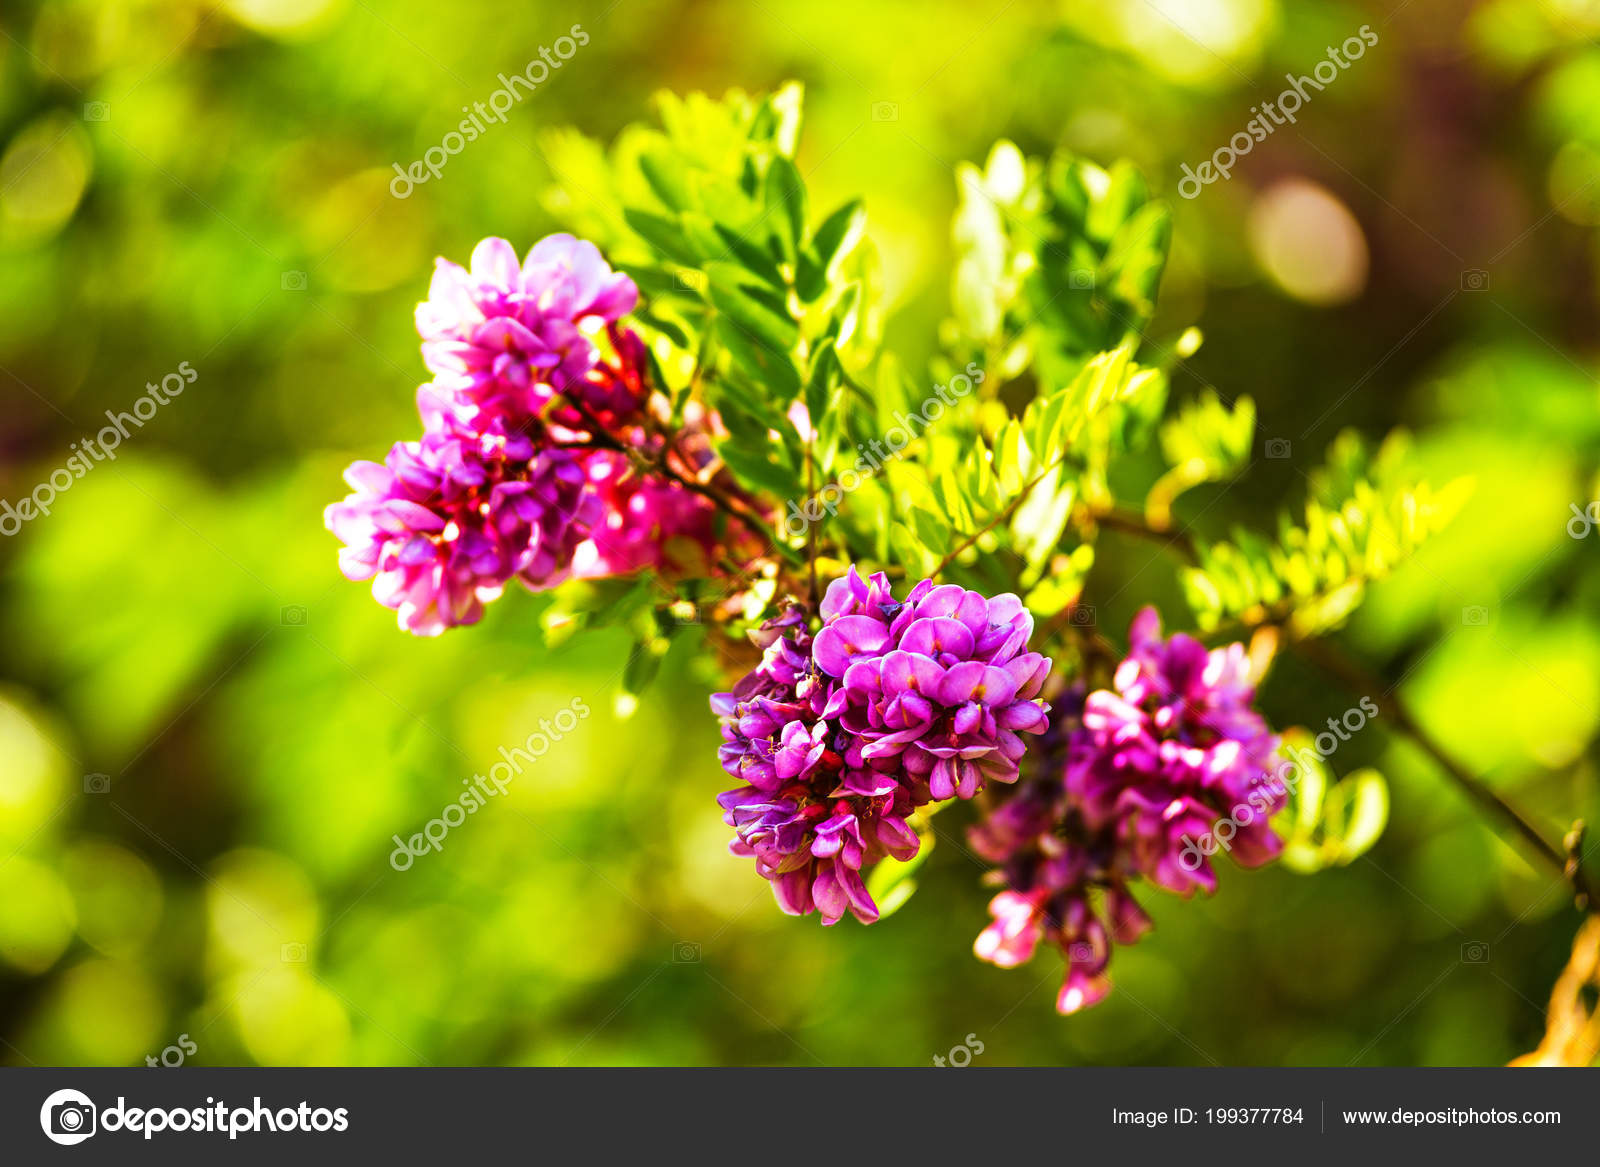 Purple acacia tree blooming background pink robinia flowers close purple acacia tree blooming background pink robinia flowers close violet stock photo mightylinksfo